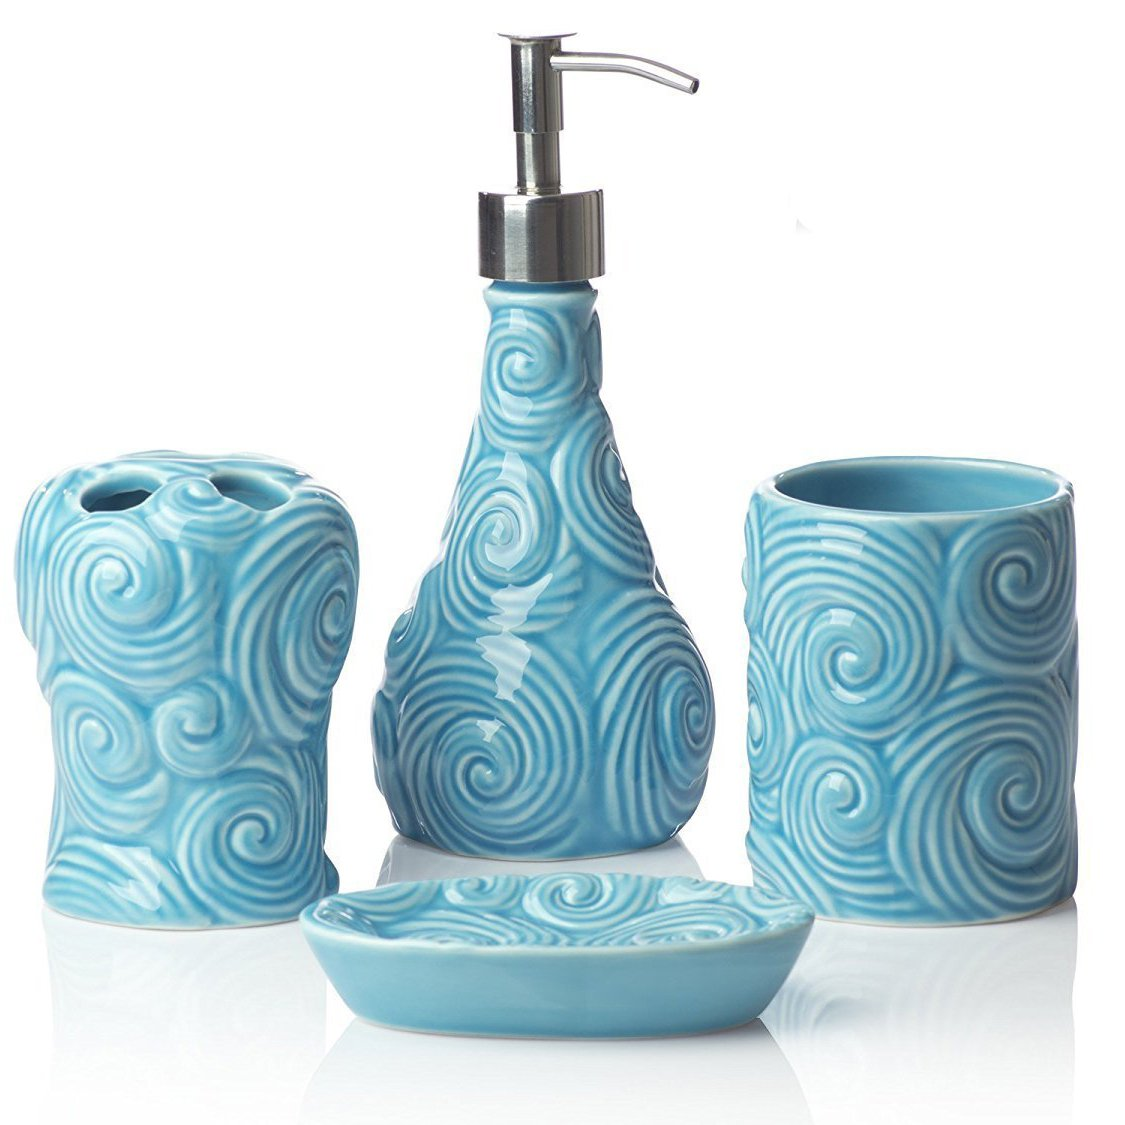 Designer - 4 Piece Bathroom Accessories Set - with Soap or Lotion Dispenser, Toothbrush Holder, Tumbler and Soap Dish - Glossy Finish - Porcelain (Ocean Waves, Aqua Blue)